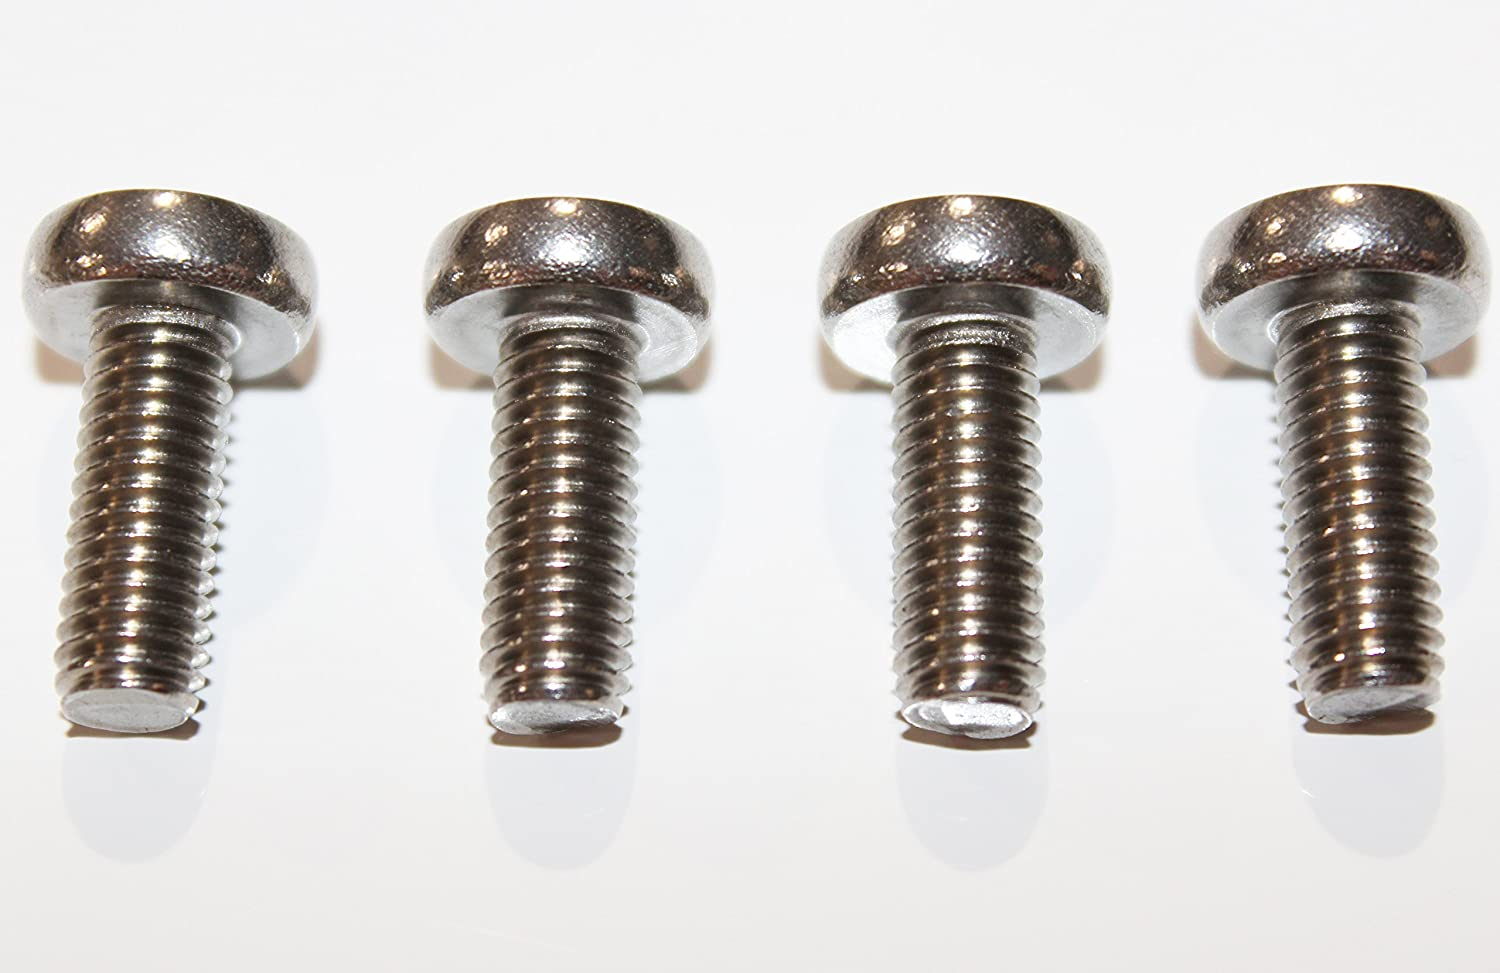 HPP License plate Stainless Steel Screws for All volkswagen Models from 1985-2015